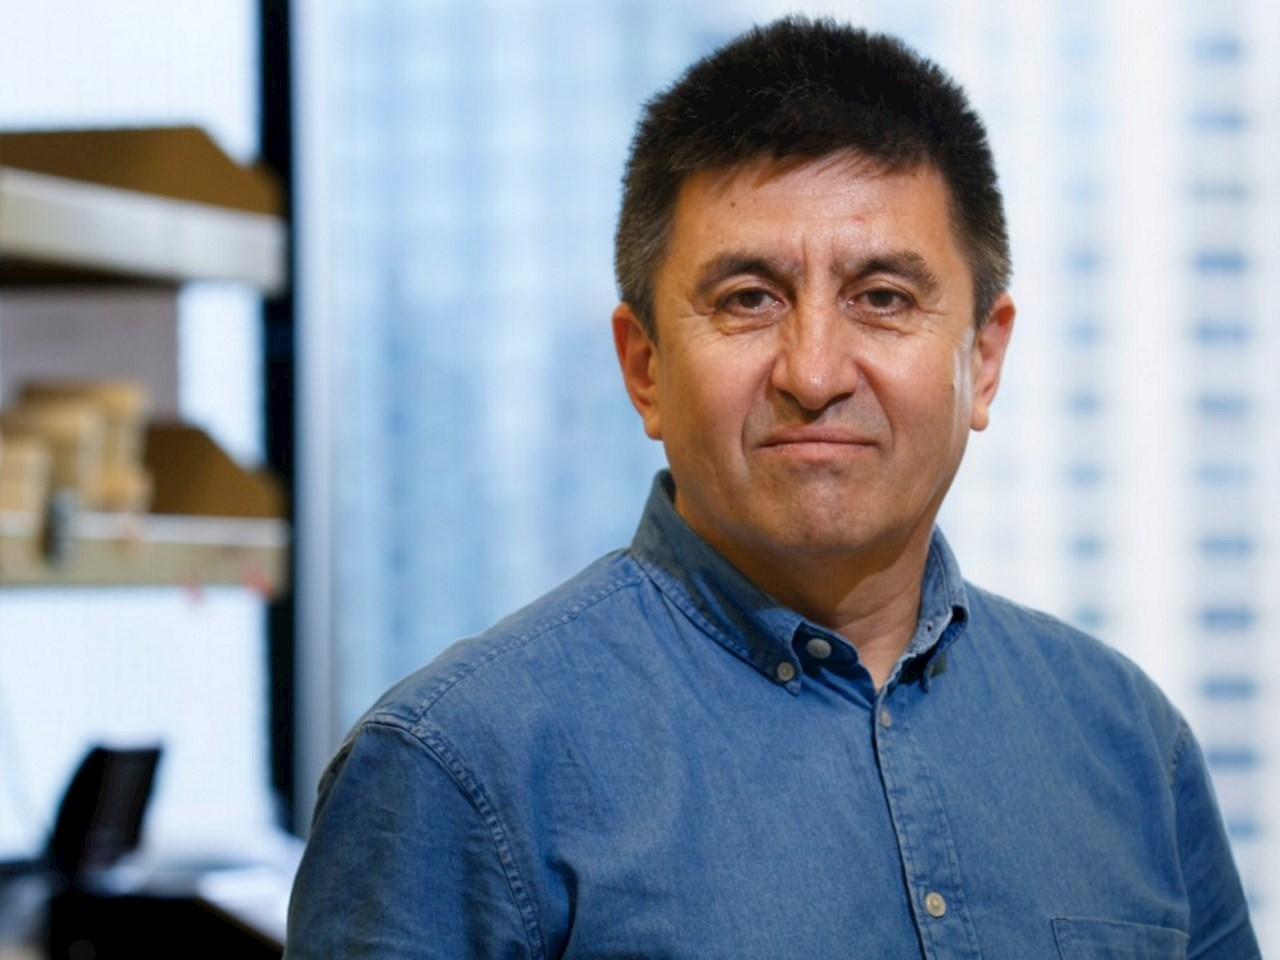 Shoukhrat Mitalipov is the first U.S.-based scientist known to have edited the DNA of human embryos